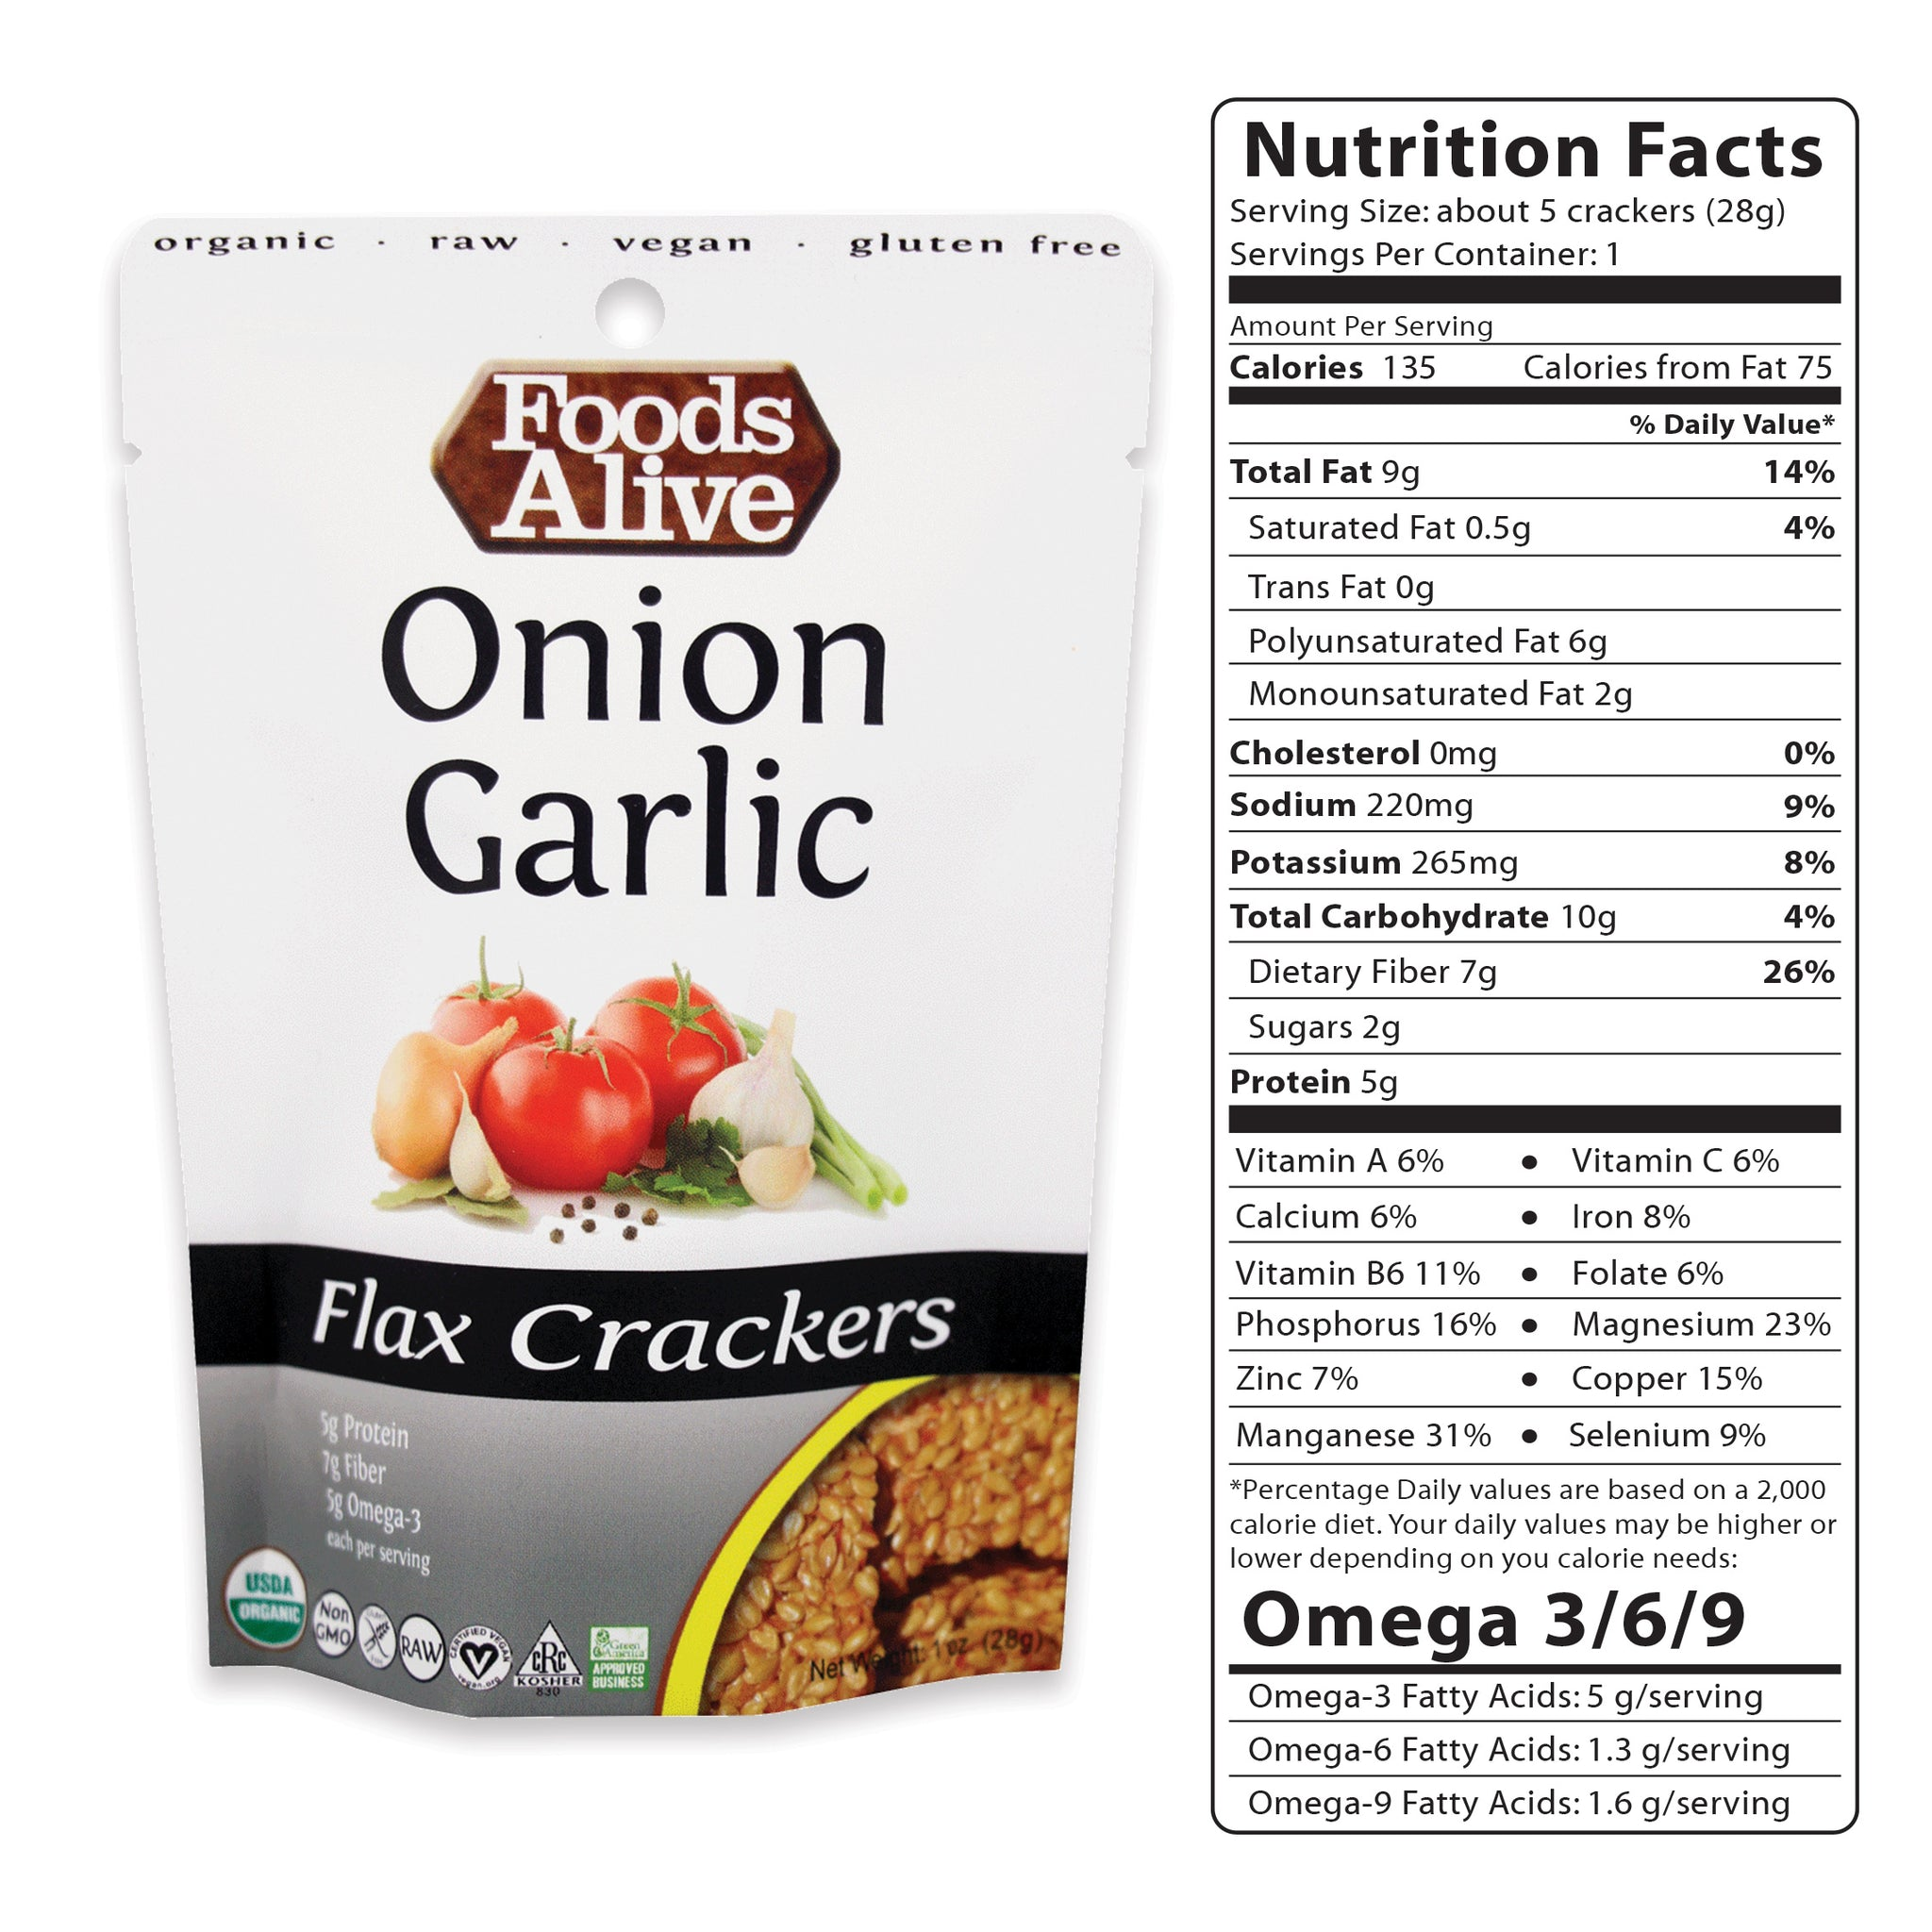 1oz Onion Garlic Flax Crackers - Organic, Gluten Free, Non-GMO, Raw, Vegan, Kosher - Foods Alive